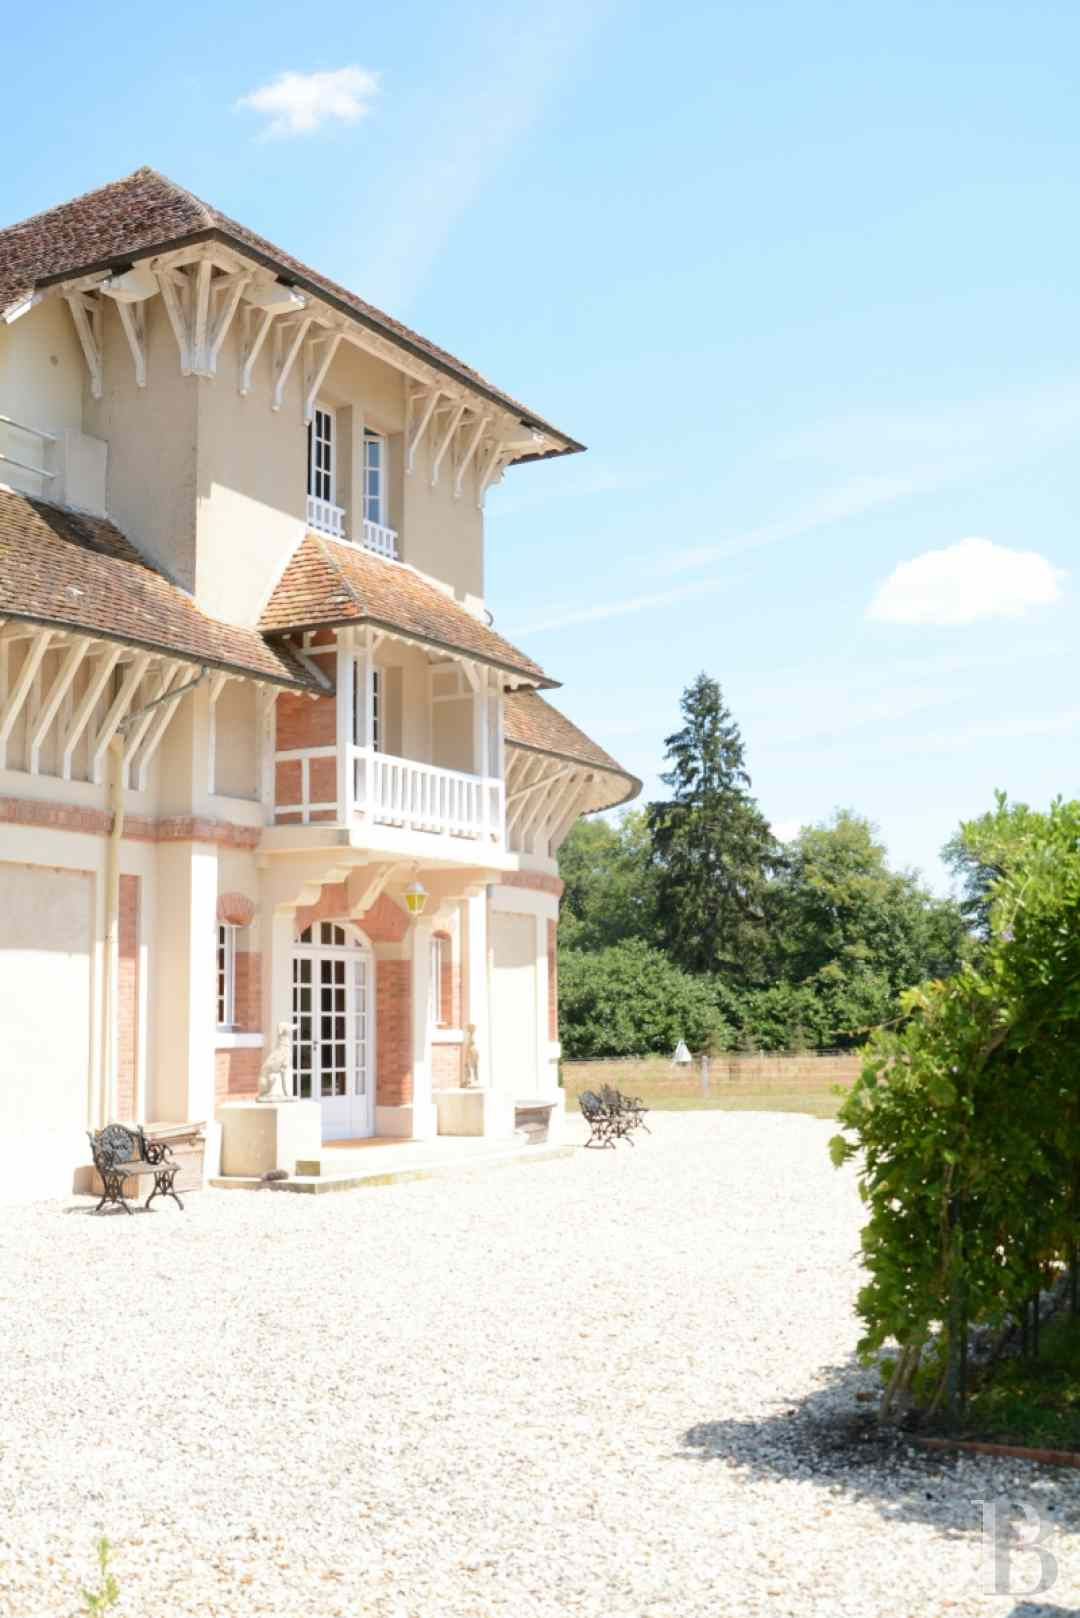 property for sale France center val de loire residences hunting - 3 zoom